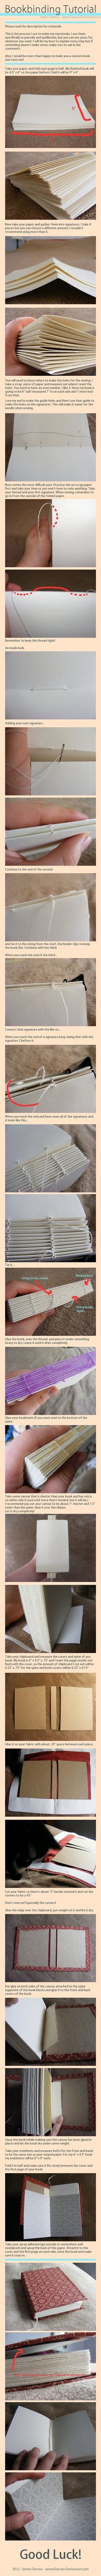 Book binding tutorial =D by ALasso